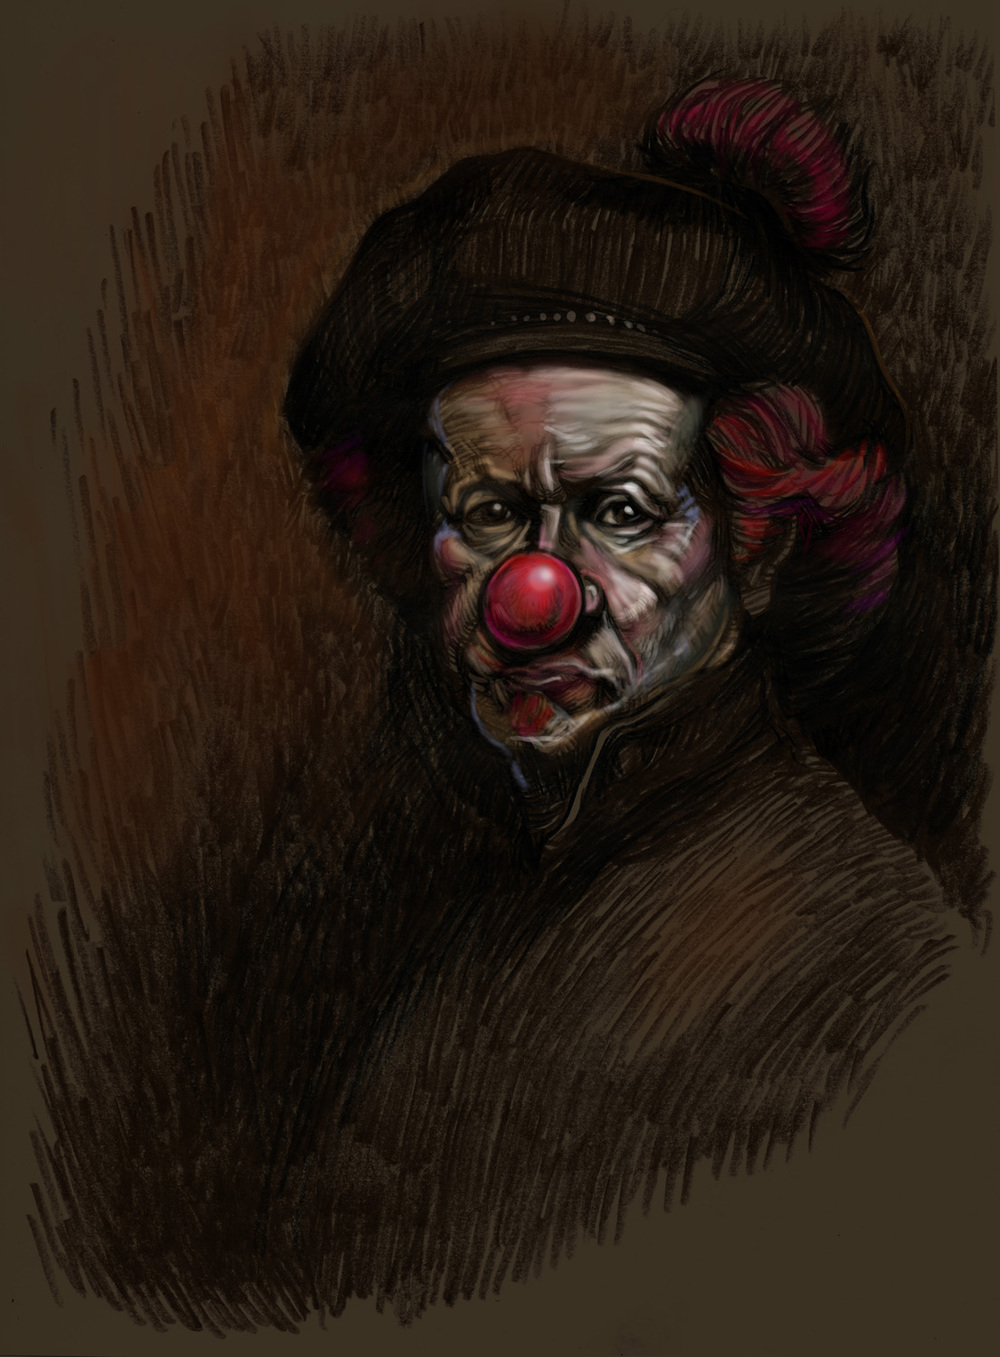 Rembrant+clown.jpg